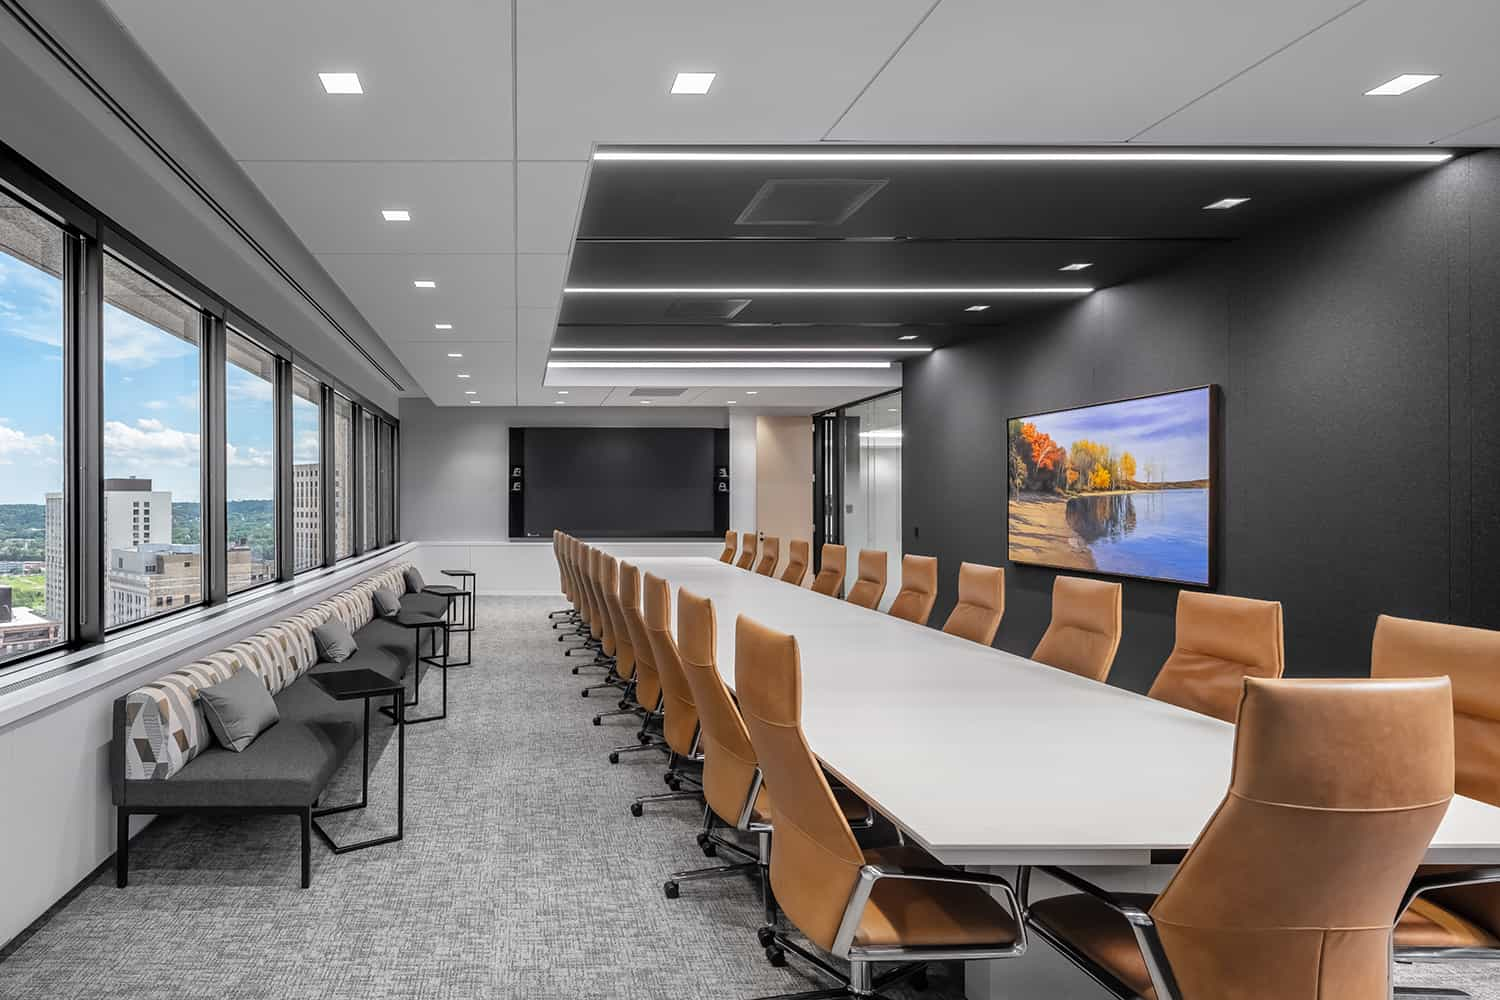 A boardroom with updated furniture, finishes, and technology to improve functions and comfort during meetings and events.